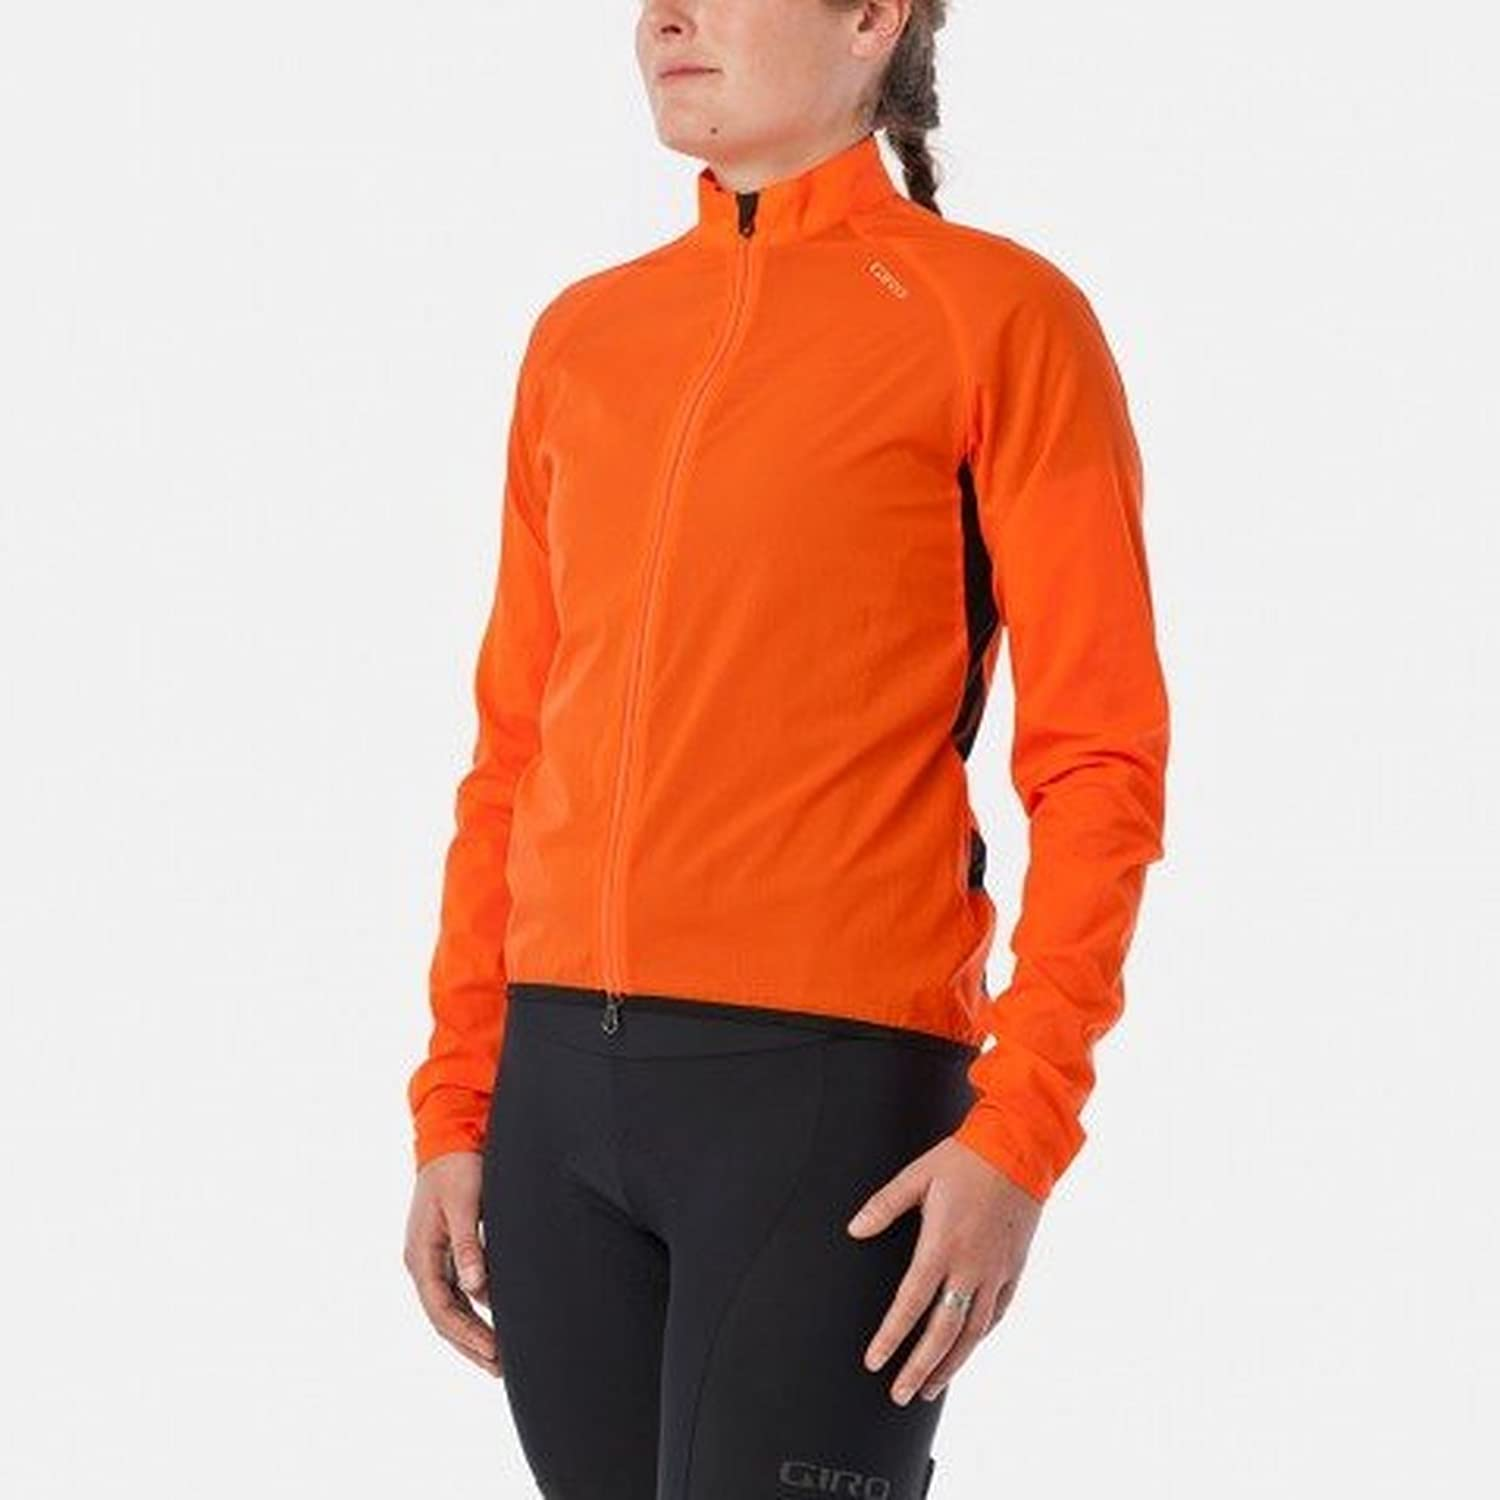 Giro 2016 Women's Chrono Wind Cycling Jacket